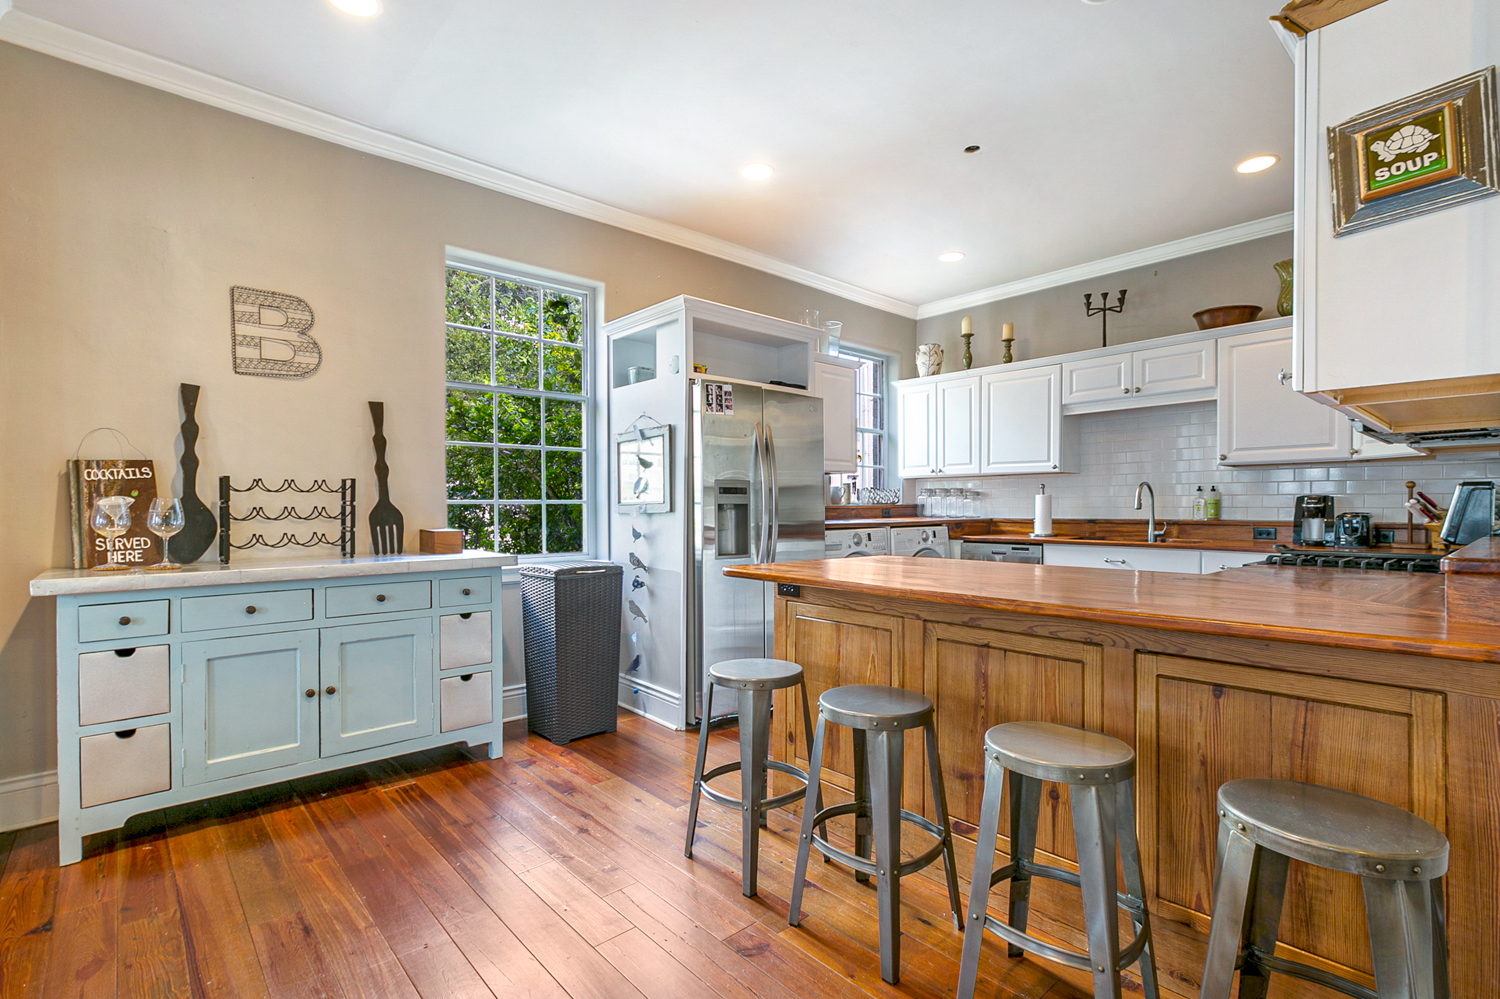 Garden District, Apartment, 2 beds, 1.0 baths, $3000 per month New Orleans Rental - devie image_7